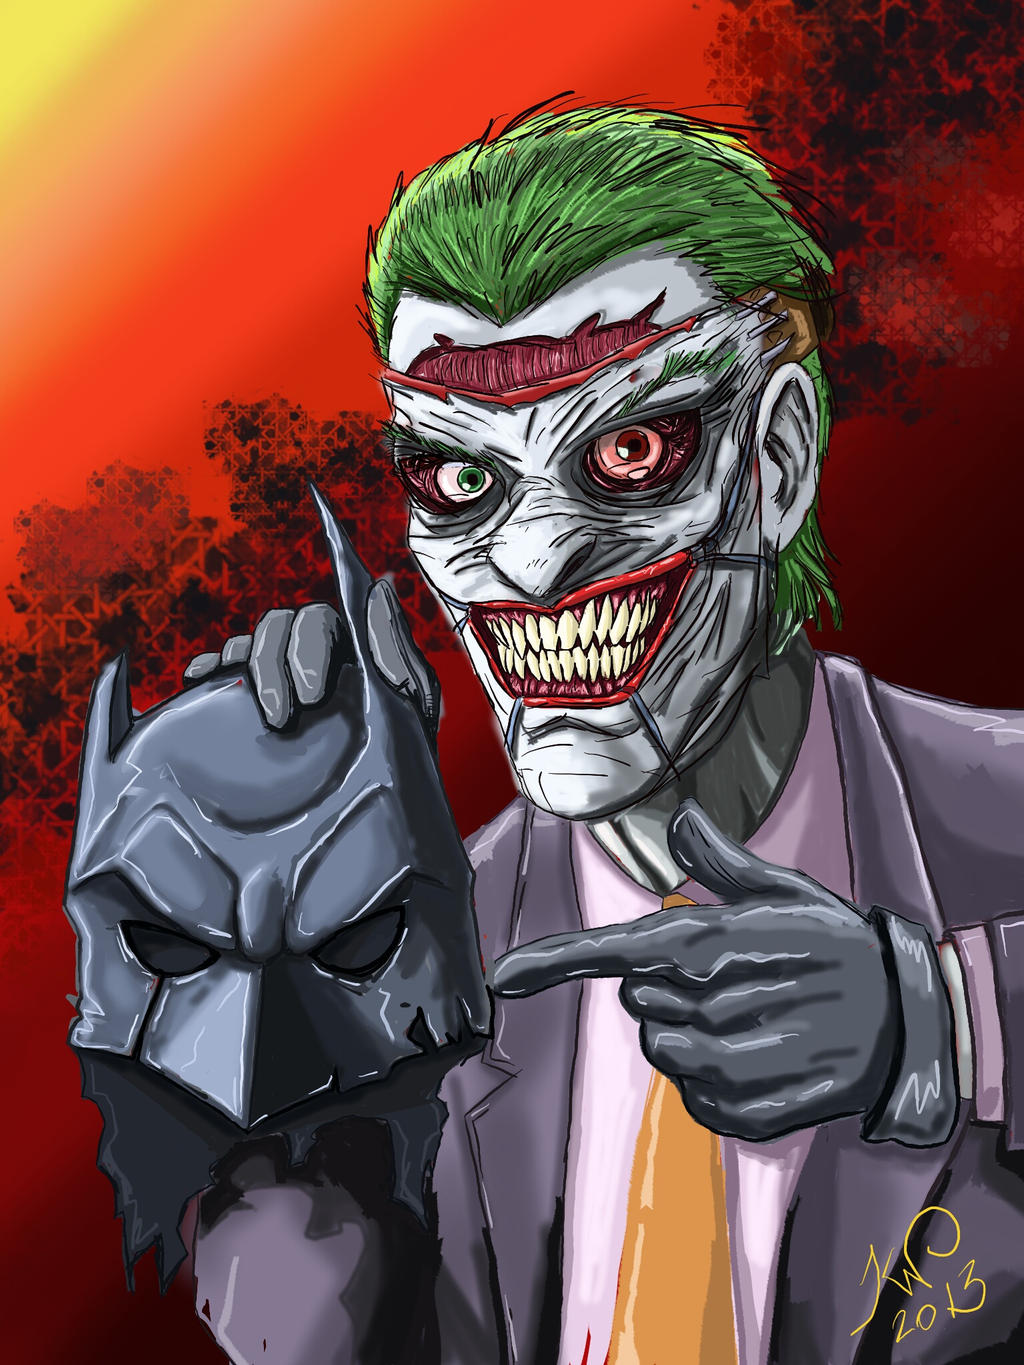 Joker - New 52 by ikarow on DeviantArtNew 52 Joker Wallpaper